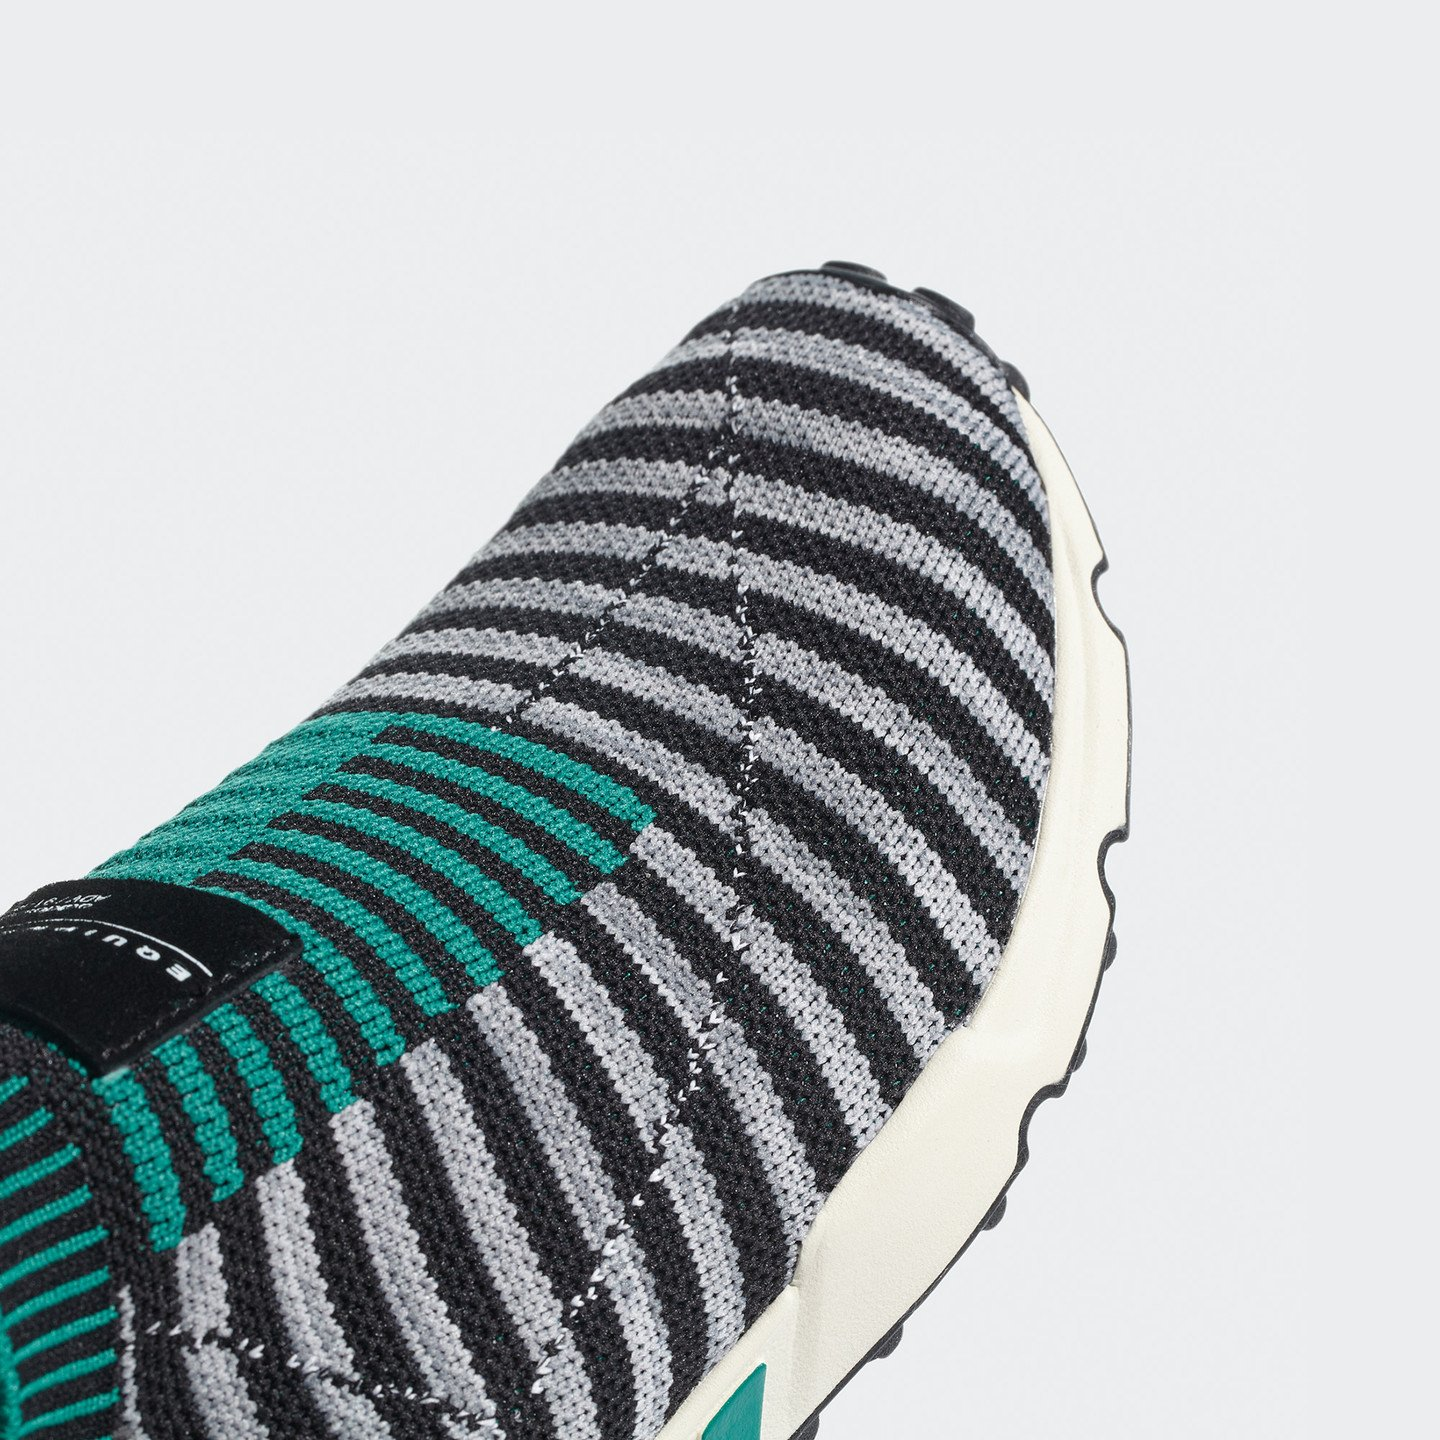 Adidas EQT Support Sk Primeknit Core Black / Grey One / Sub Green B37522